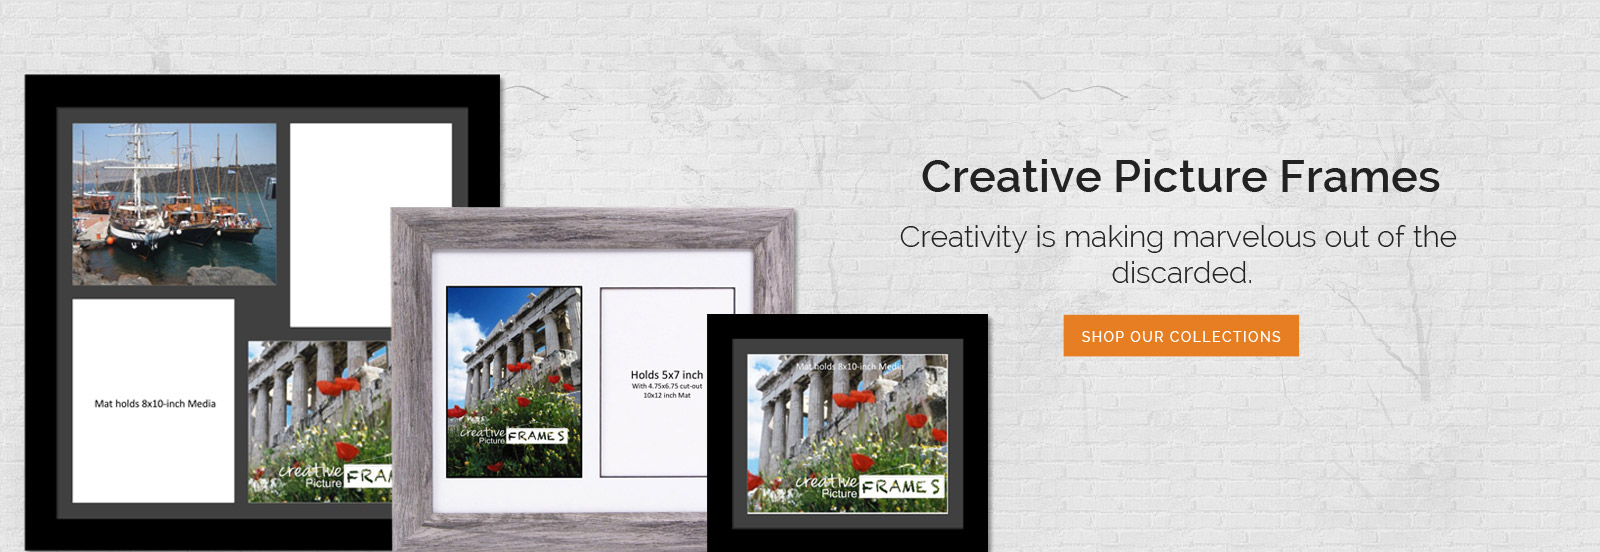 creative picture frames ebay stores